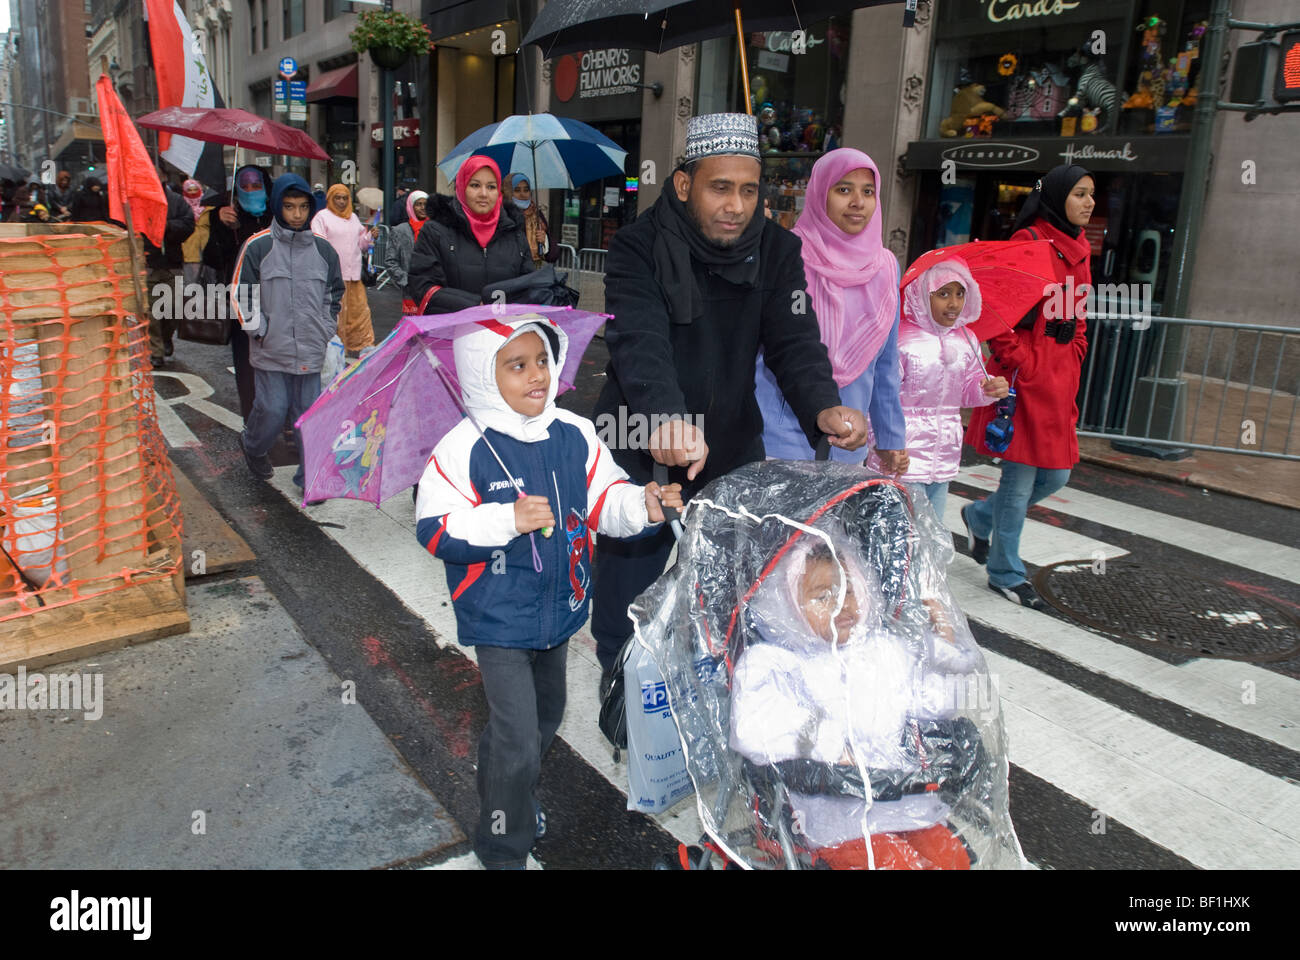 Muslims from the tri-state area gather in New York for the Muslim World Day Parade - Stock Image